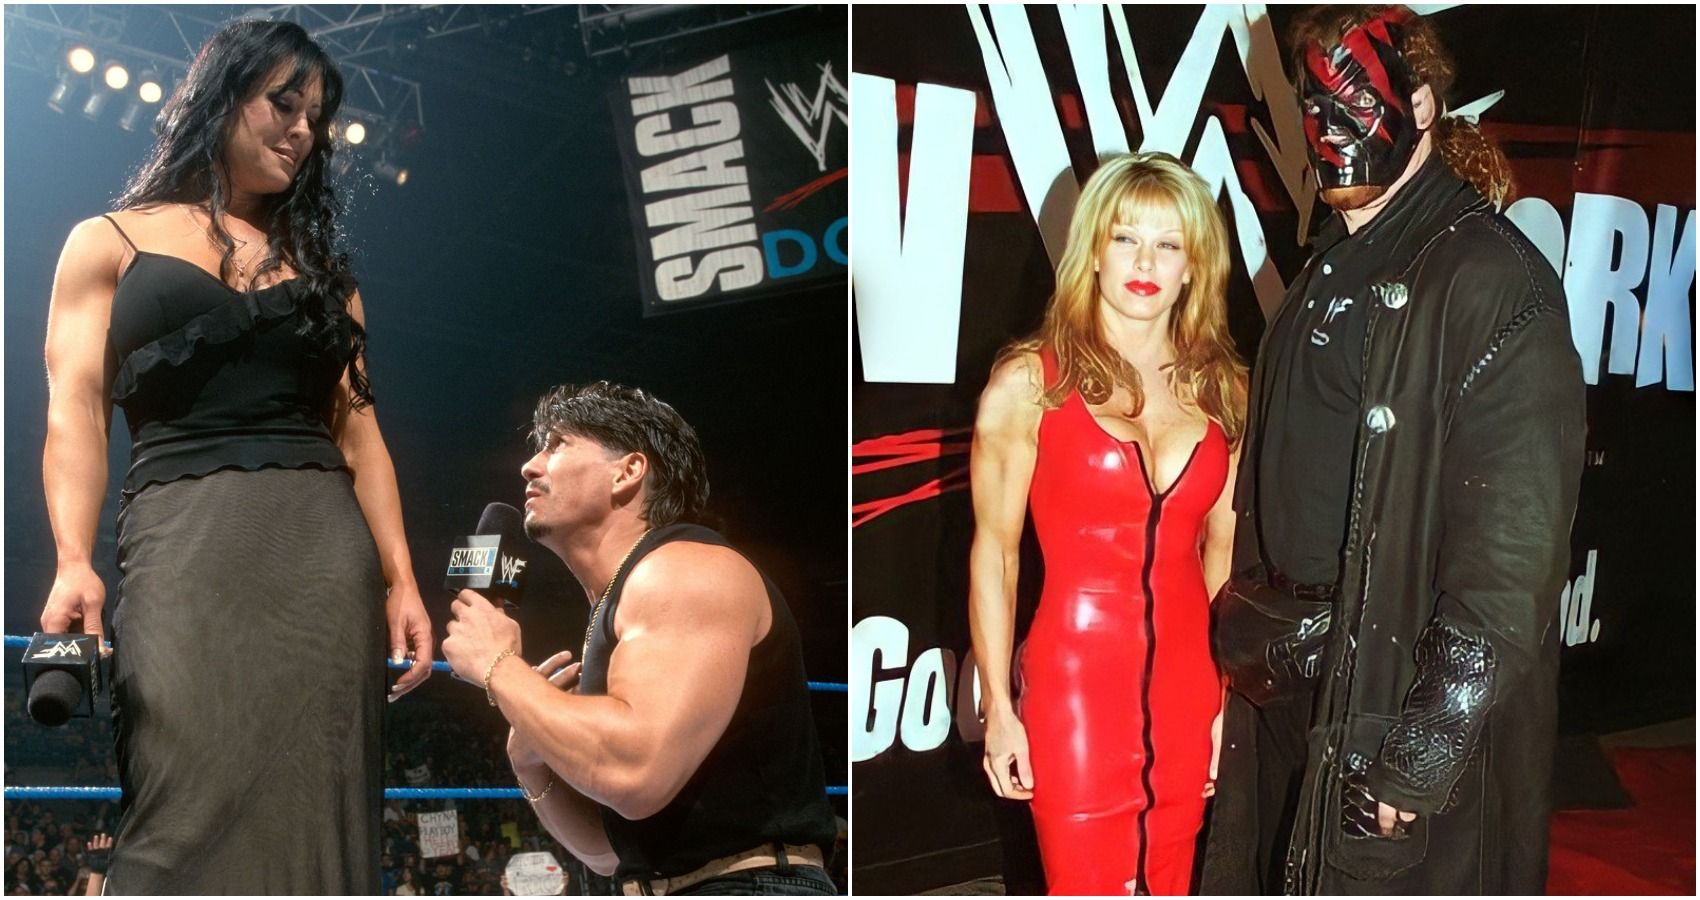 Every Romantic Angle Of The Attitude Era, Ranked From Worst To Best